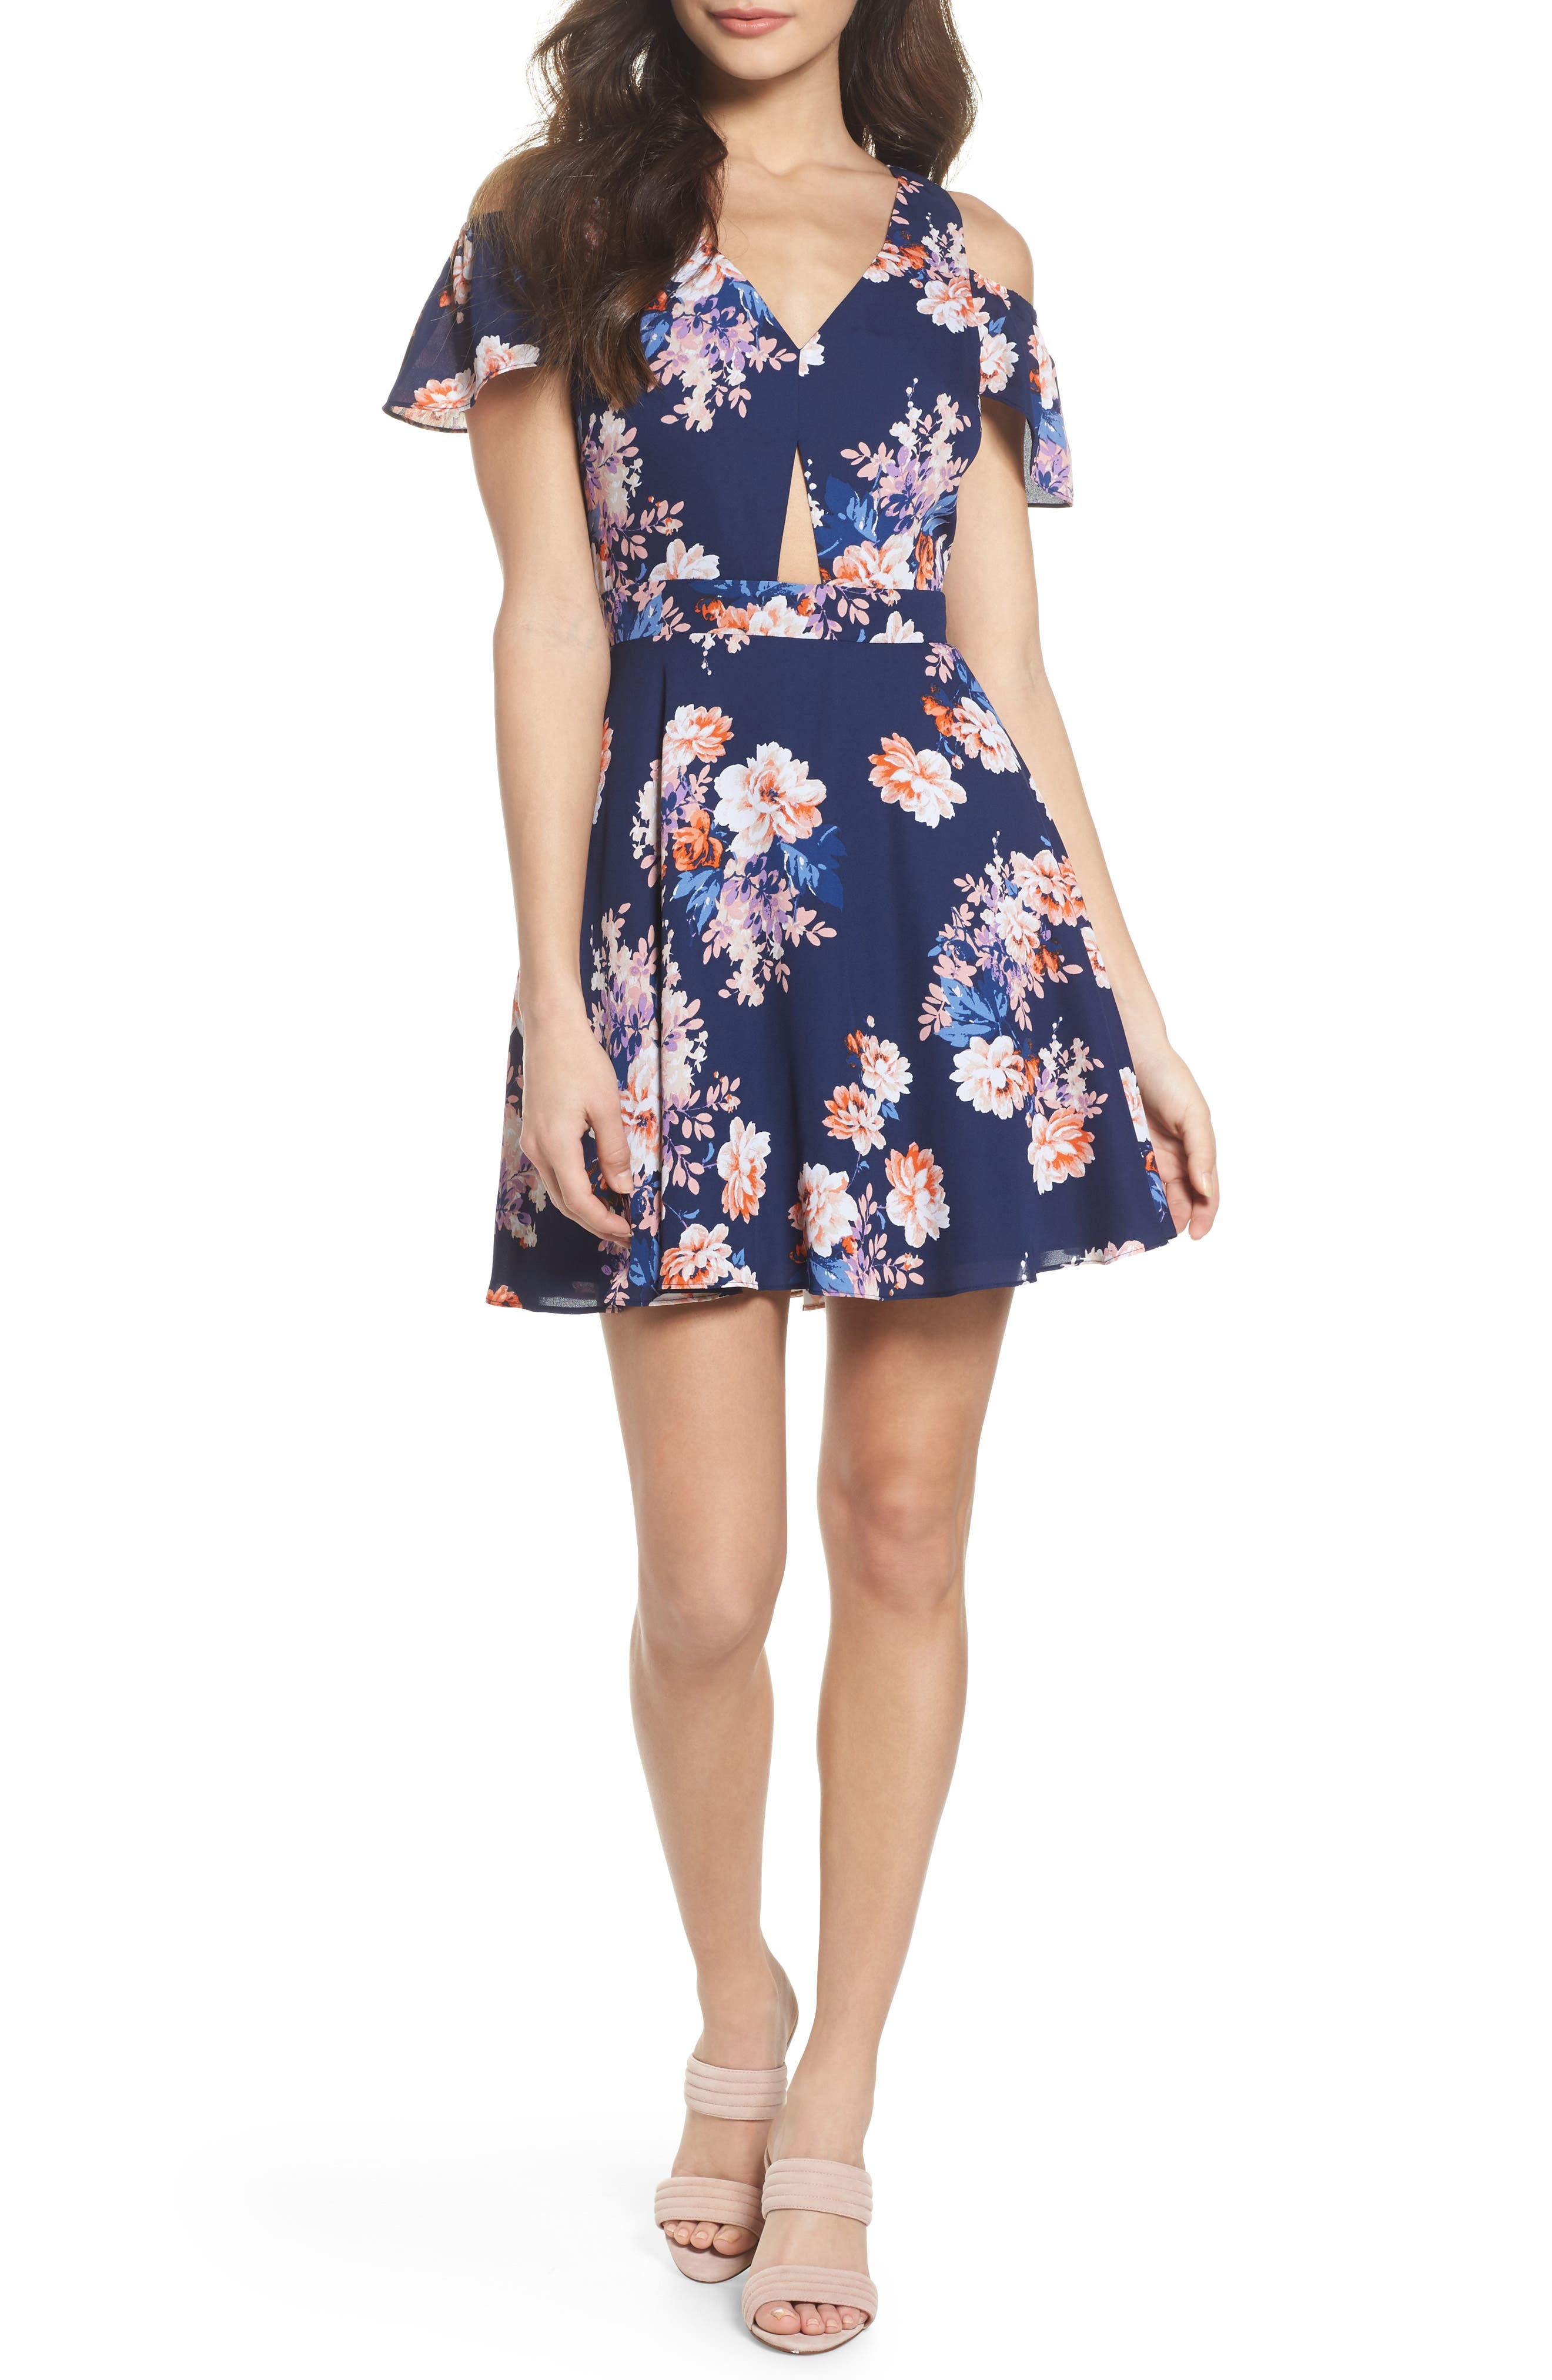 Main Image - Ali & Jay Chasing Butterflies Cold Shoulder Fit & Flare Dress (Nordstrom Exclusive)